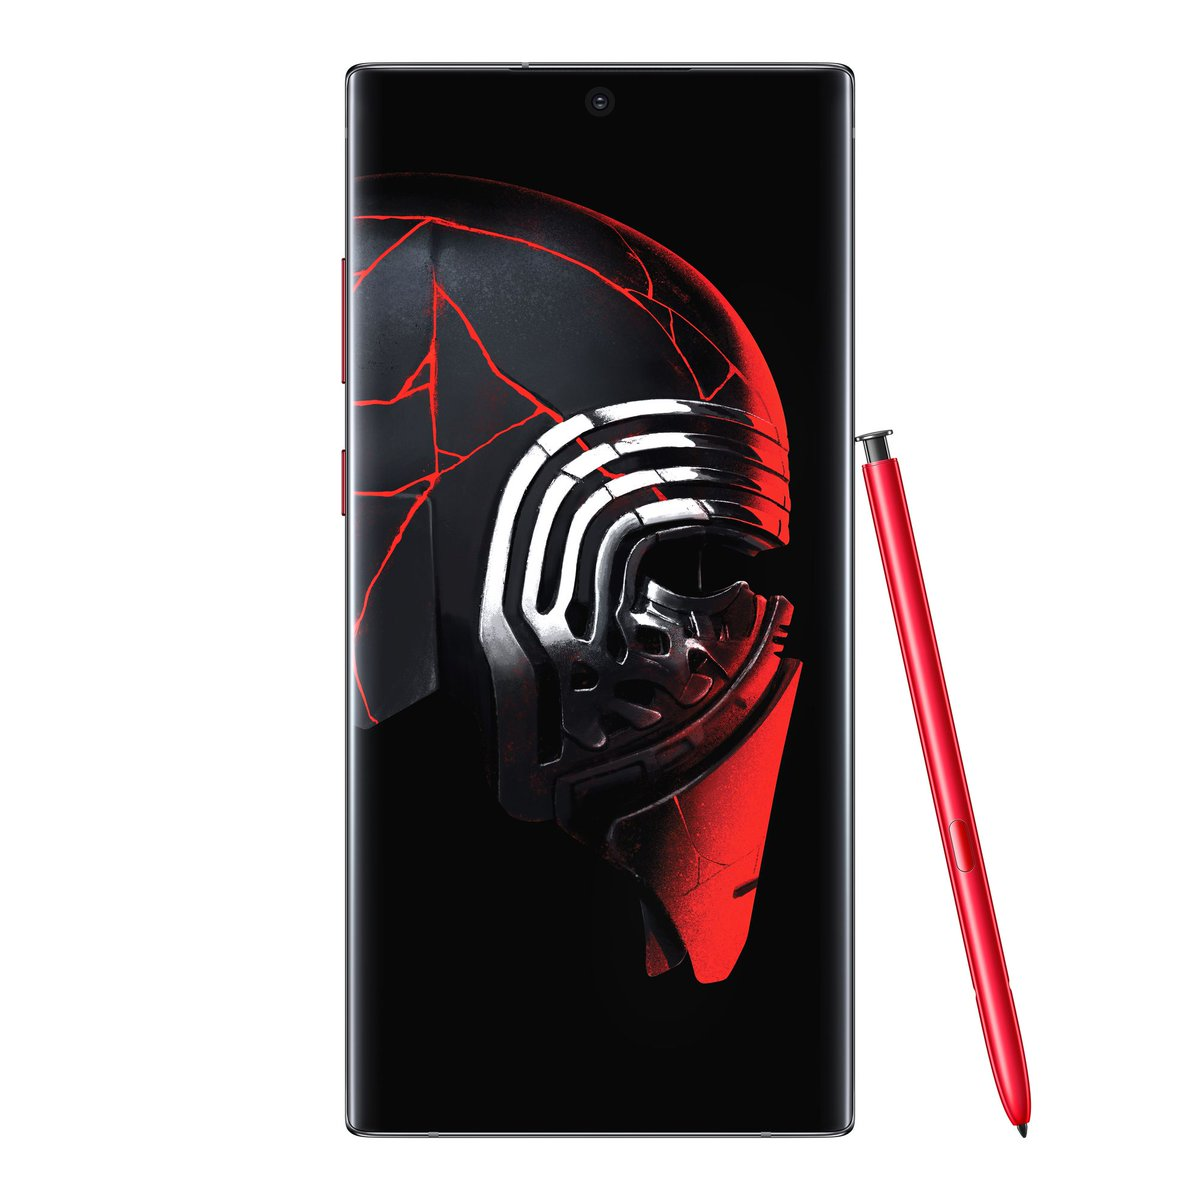 The Force is strong with Samsung's Star Wars-themed Galaxy Note 10 Plus